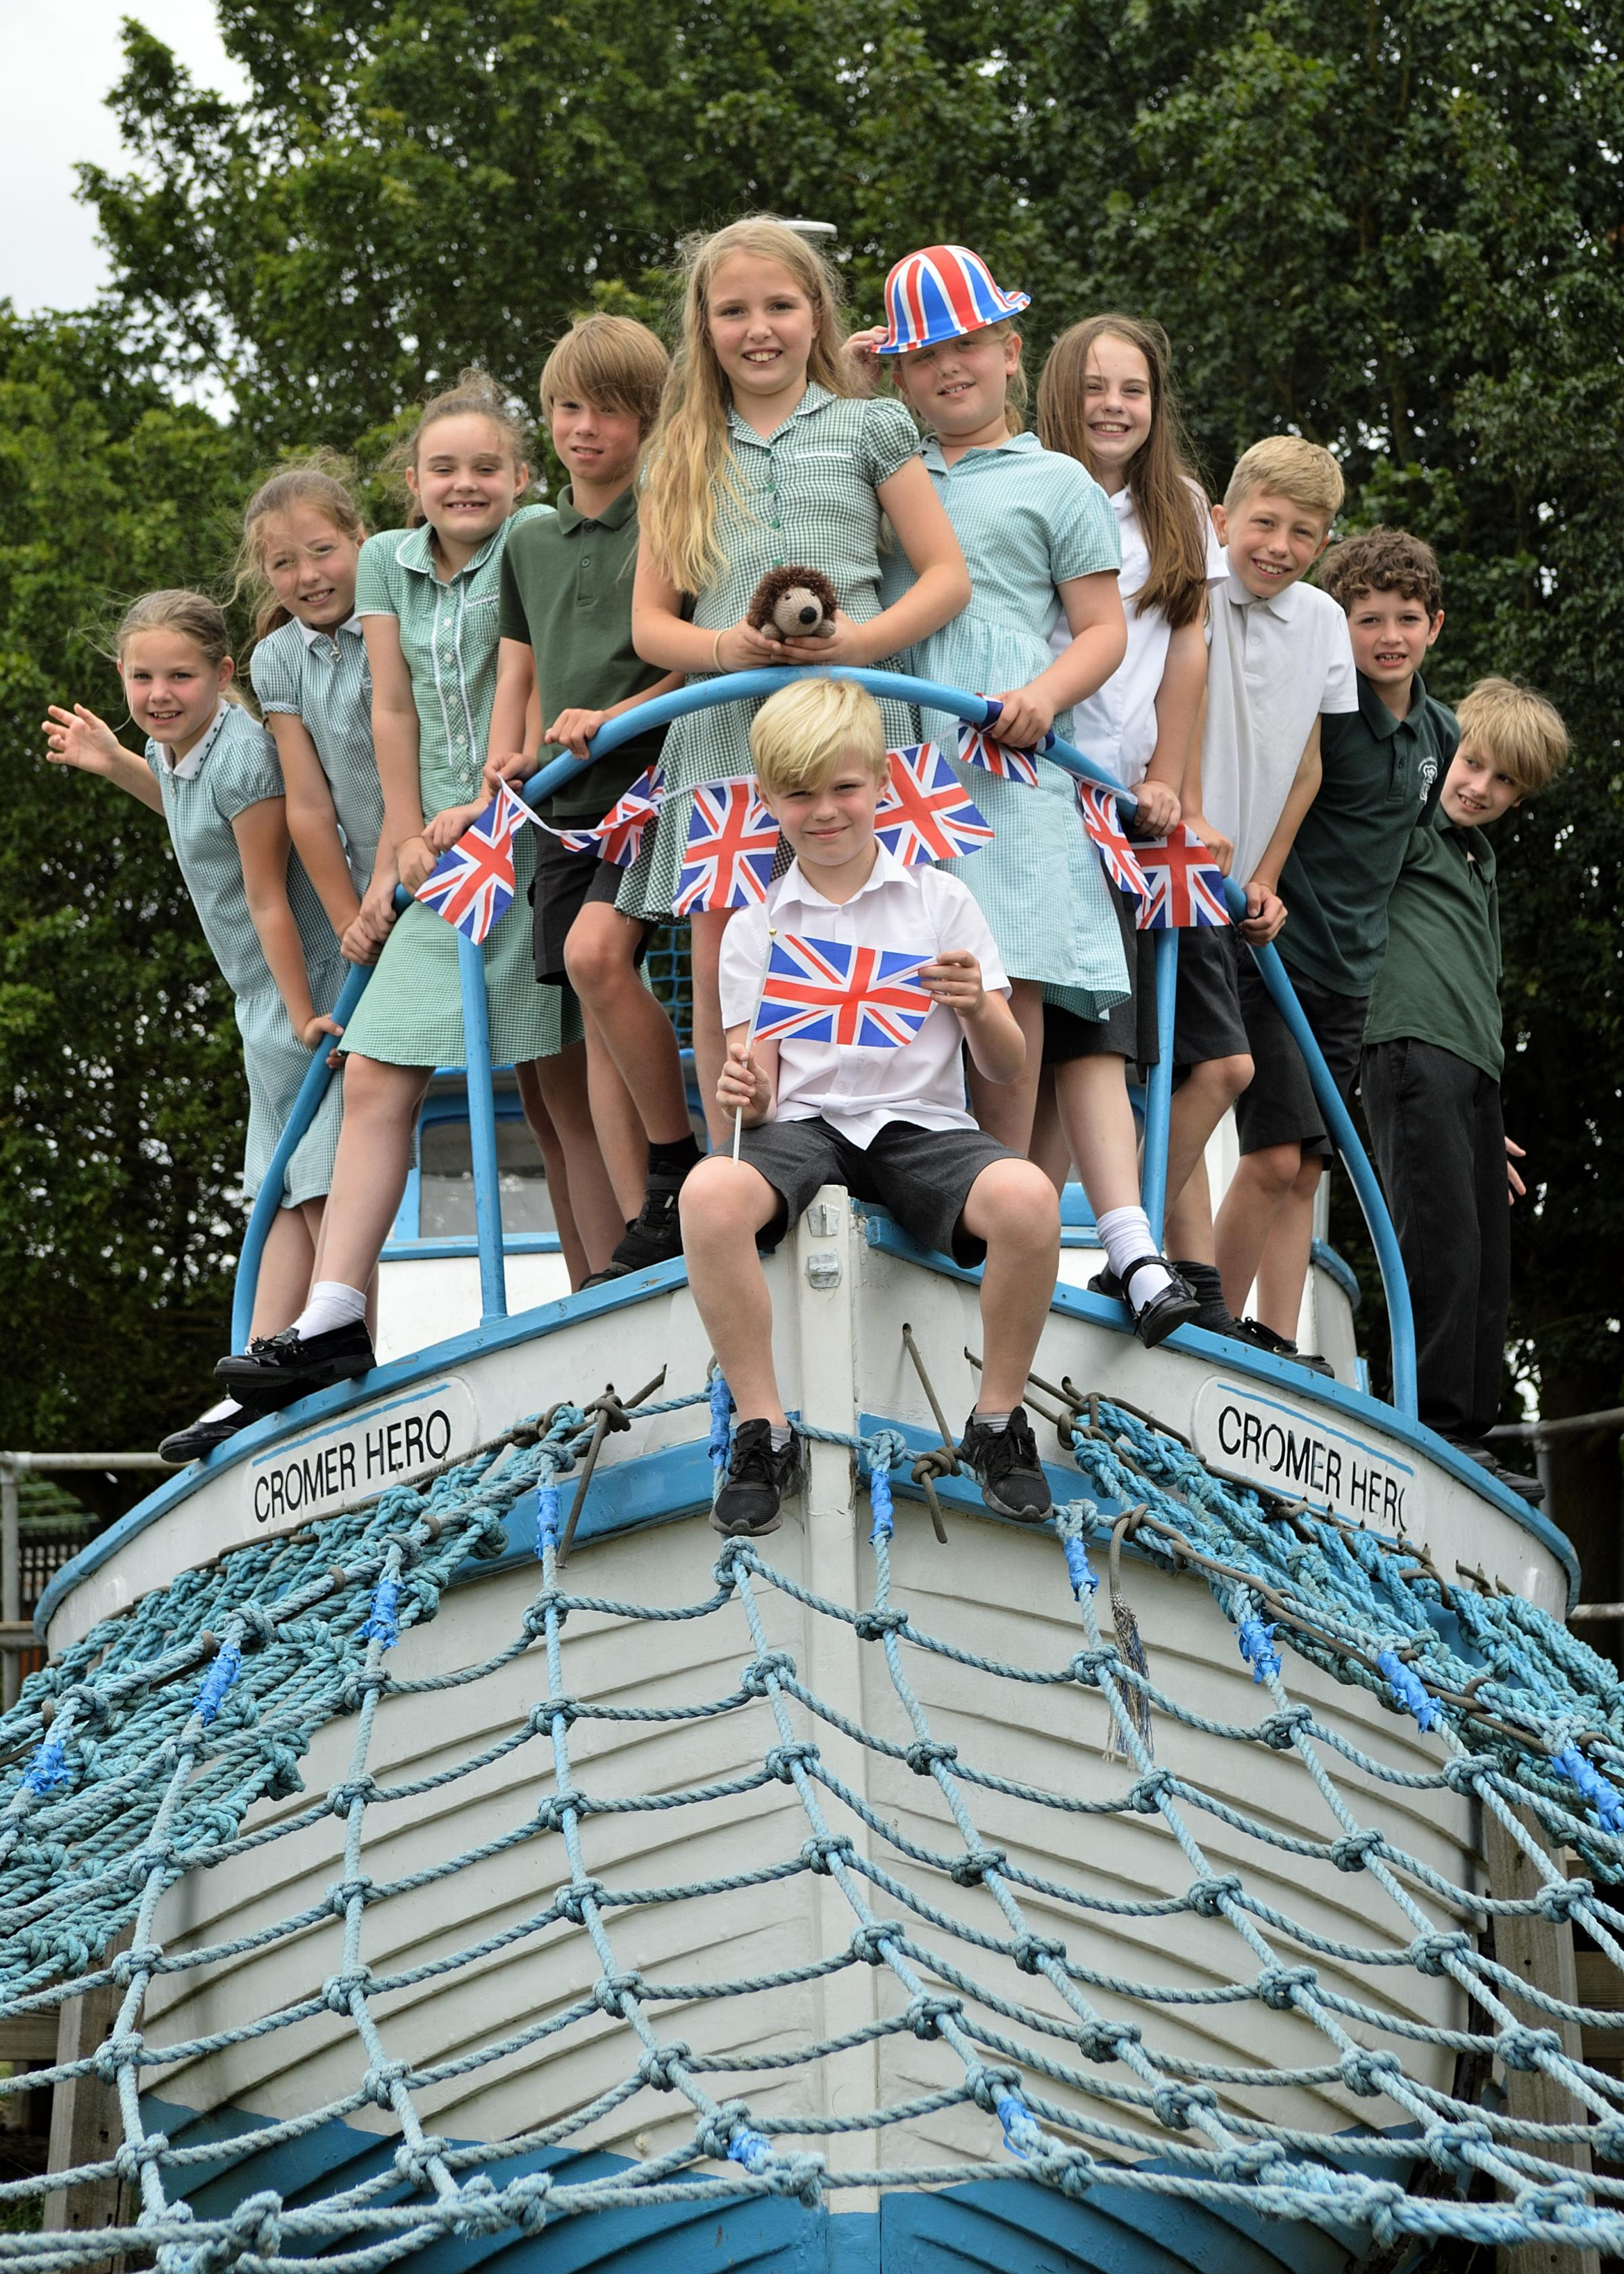 Children at Chingford CofE Primary School are gearing up for the Great British Summer Fair to raise money for air conditioning in their classrooms.